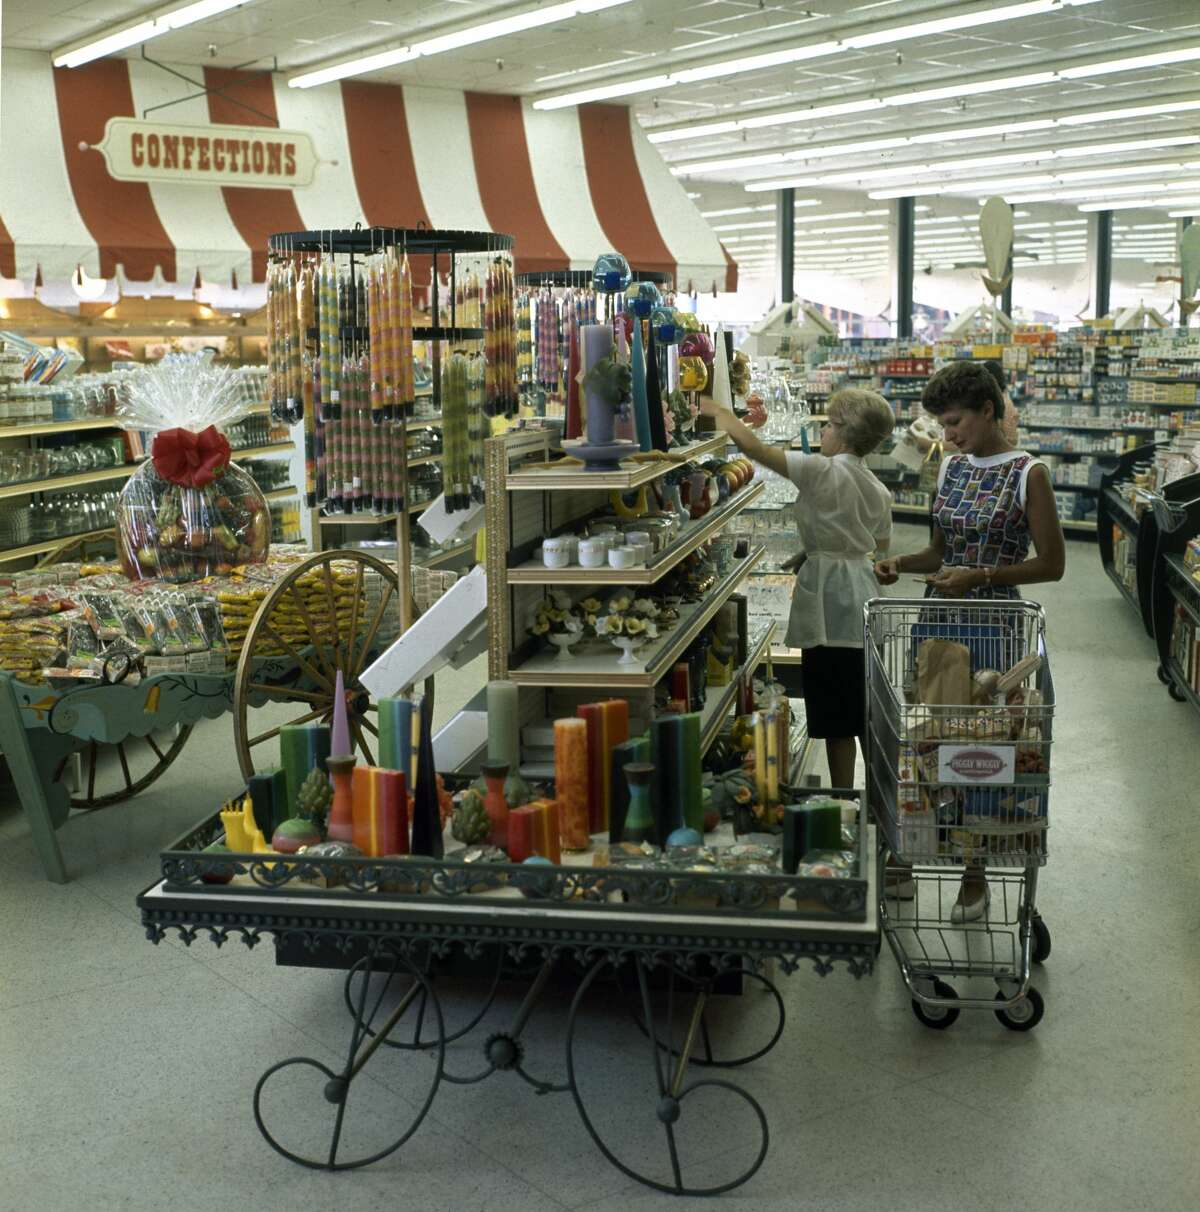 A view of shoppers as they look at candles on a display cart in a newly opened Piggly Wiggly supermarket in Encino, California, 1962.